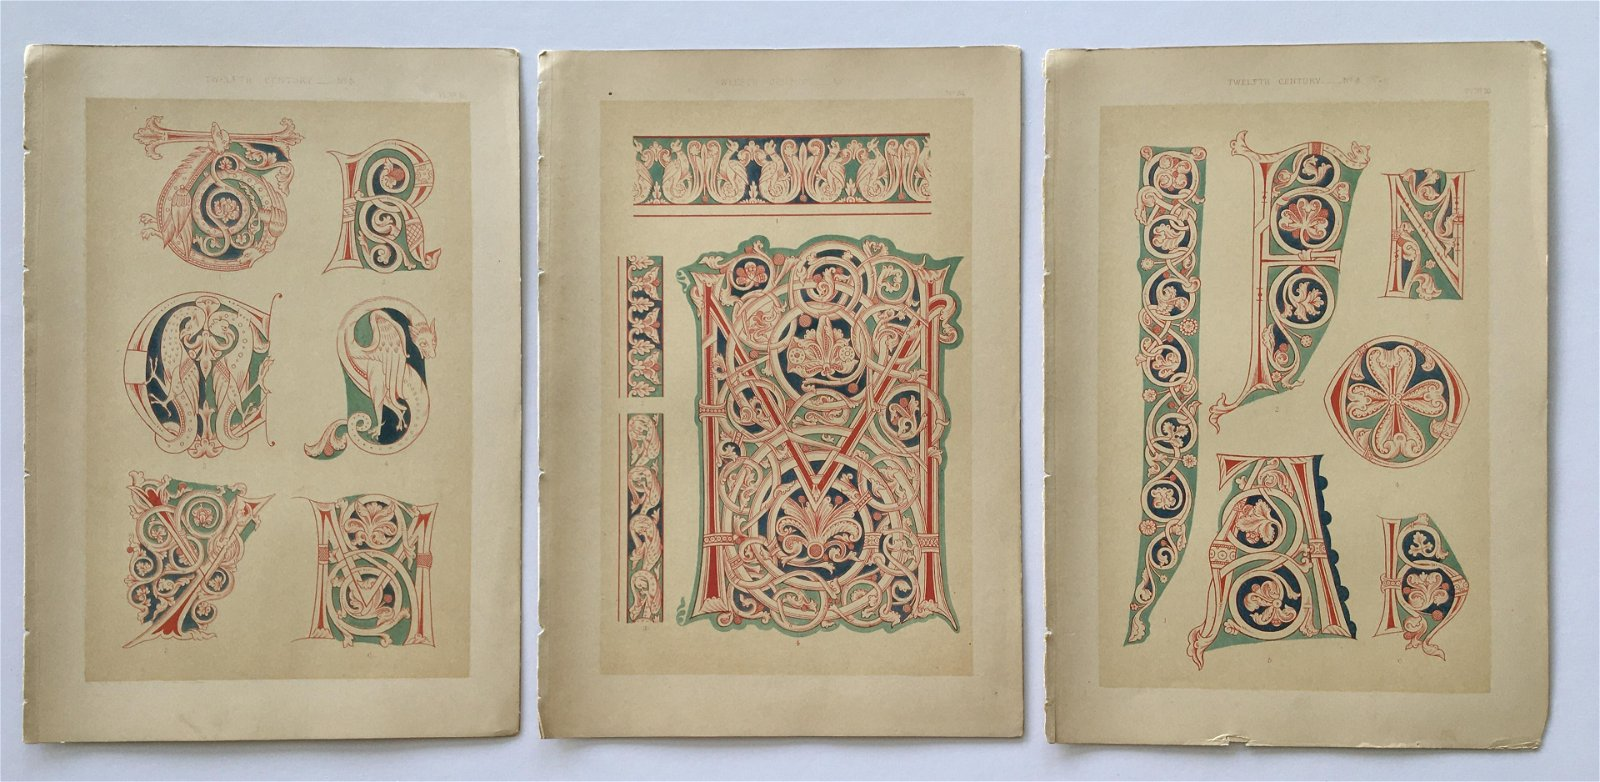 LOT OF 3 ANTIQUE TYPOGRAPHY CHROMOLITHOGRAPHS